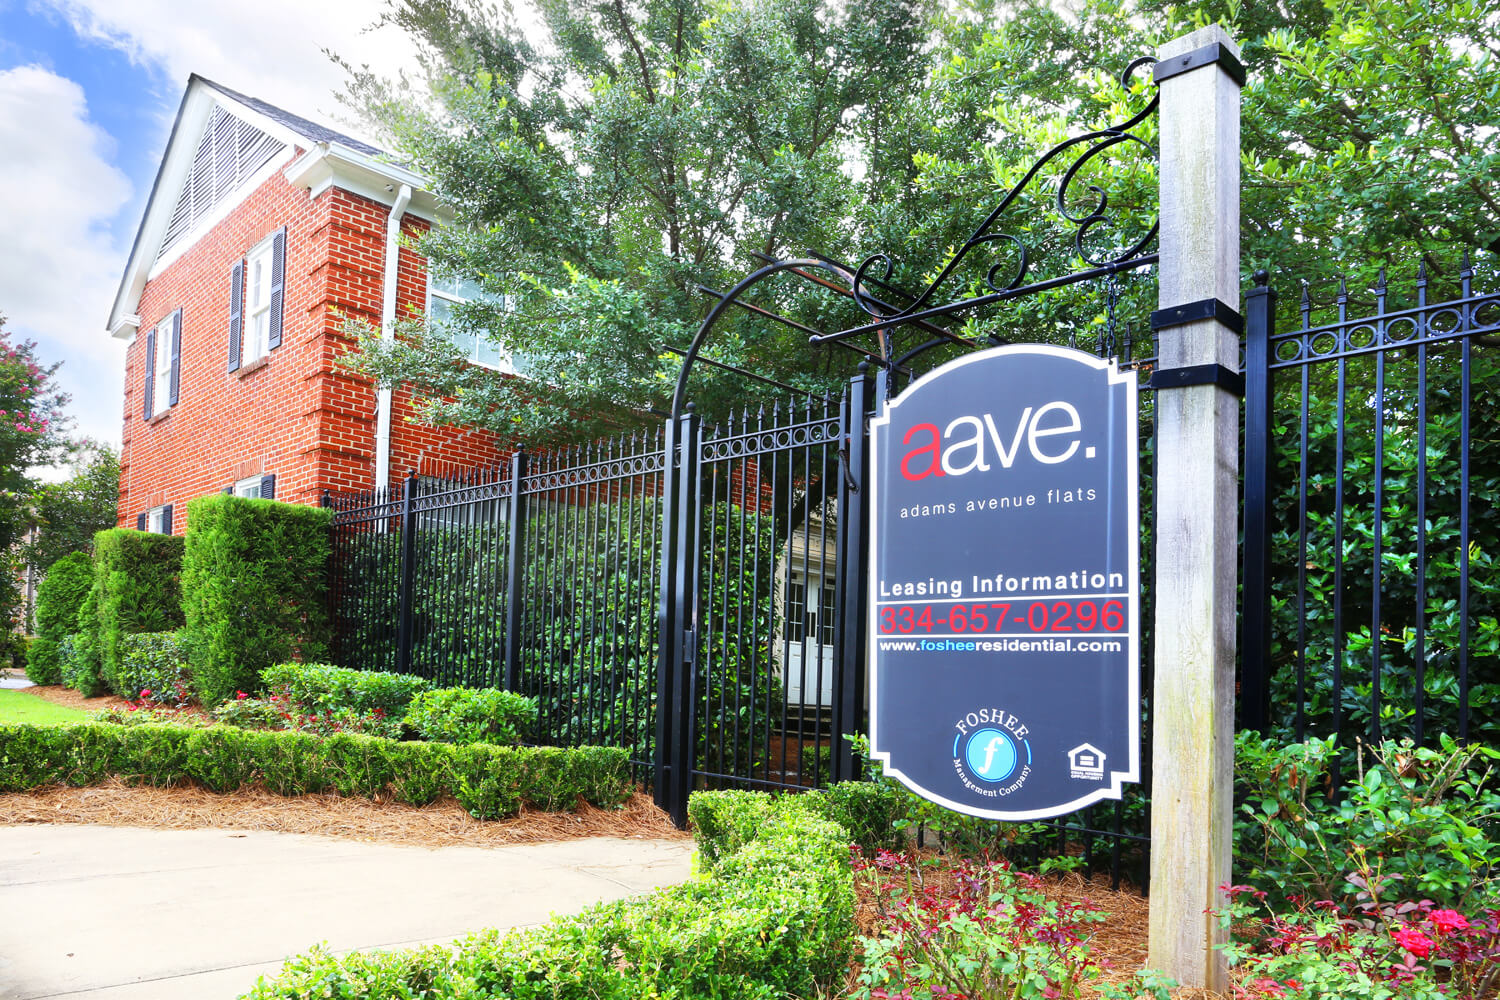 Adams Avenue Flats Designed by Foshee Architecture - View of Entrance Sign